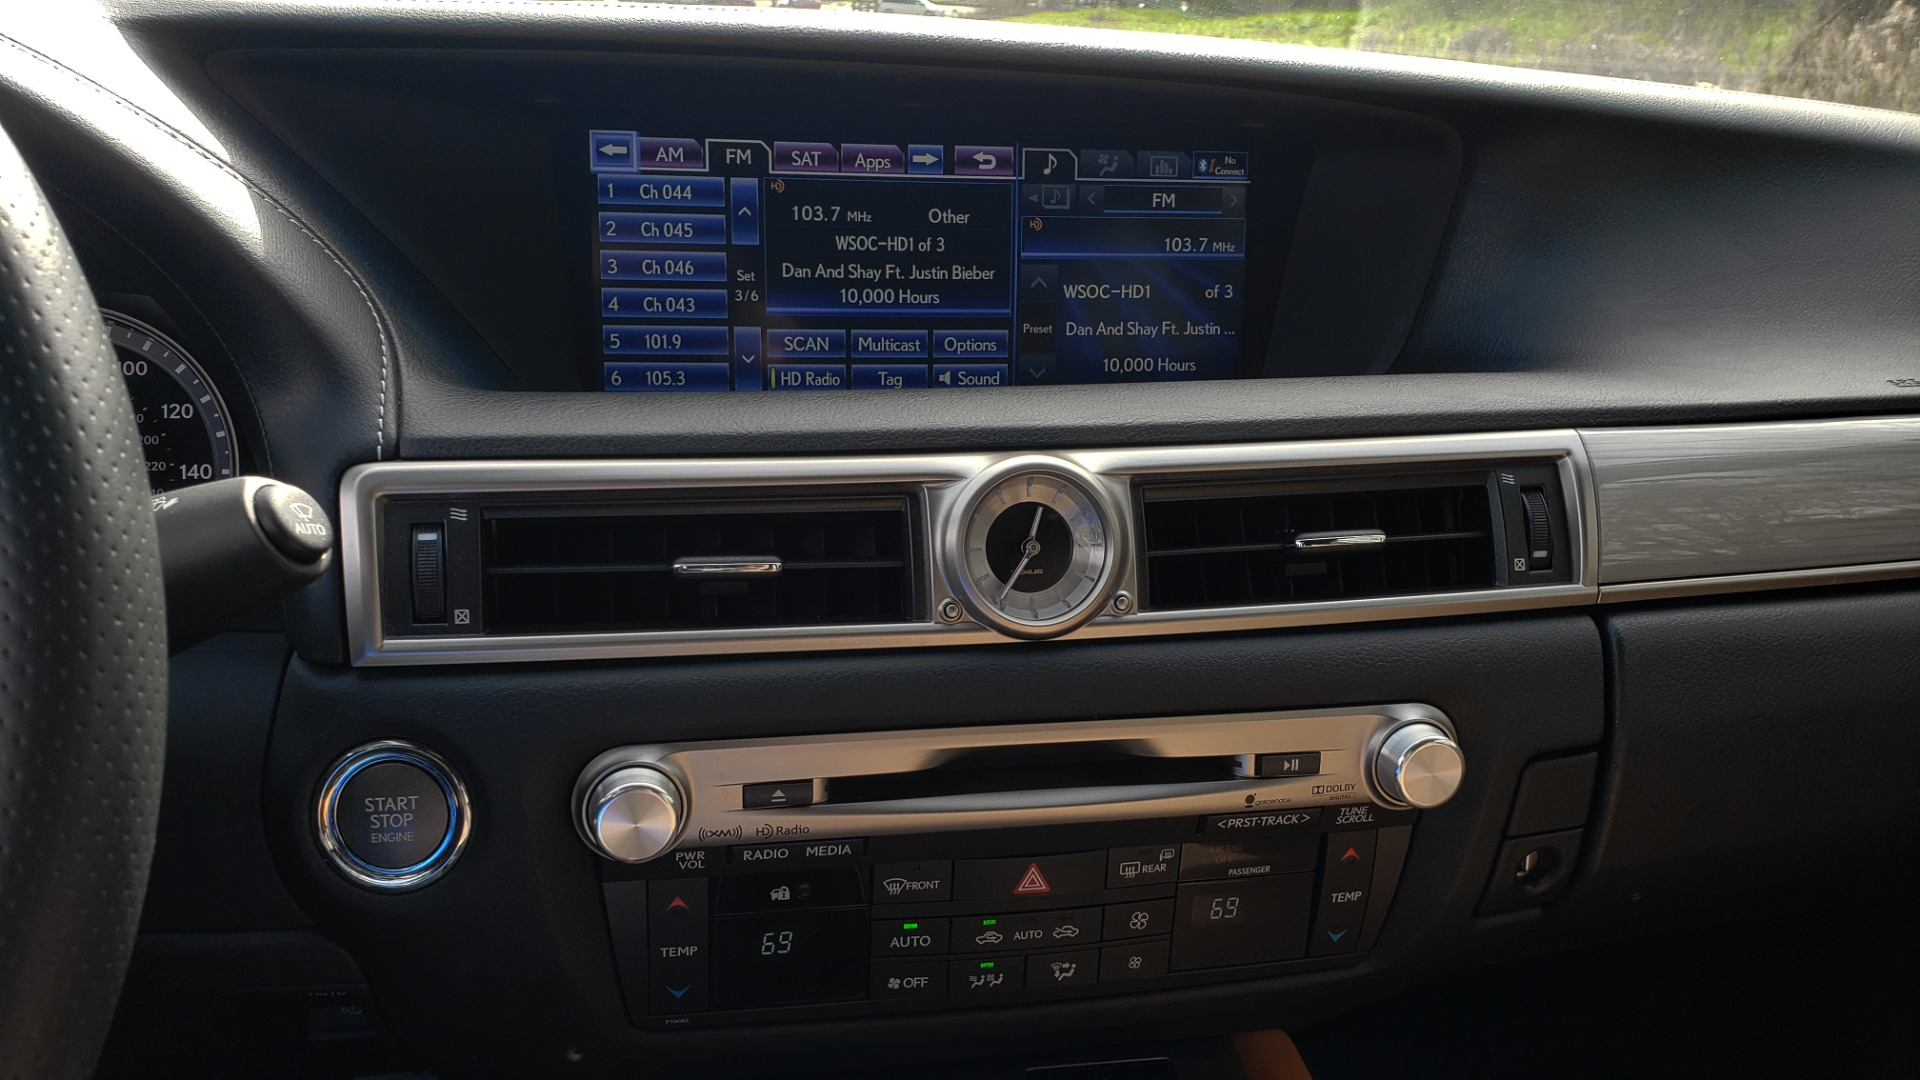 Used 2013 Lexus GS 350 F-SPORT / NAV / SUNROOF / BSM / PRK ASST / REARVIEW for sale Sold at Formula Imports in Charlotte NC 28227 38